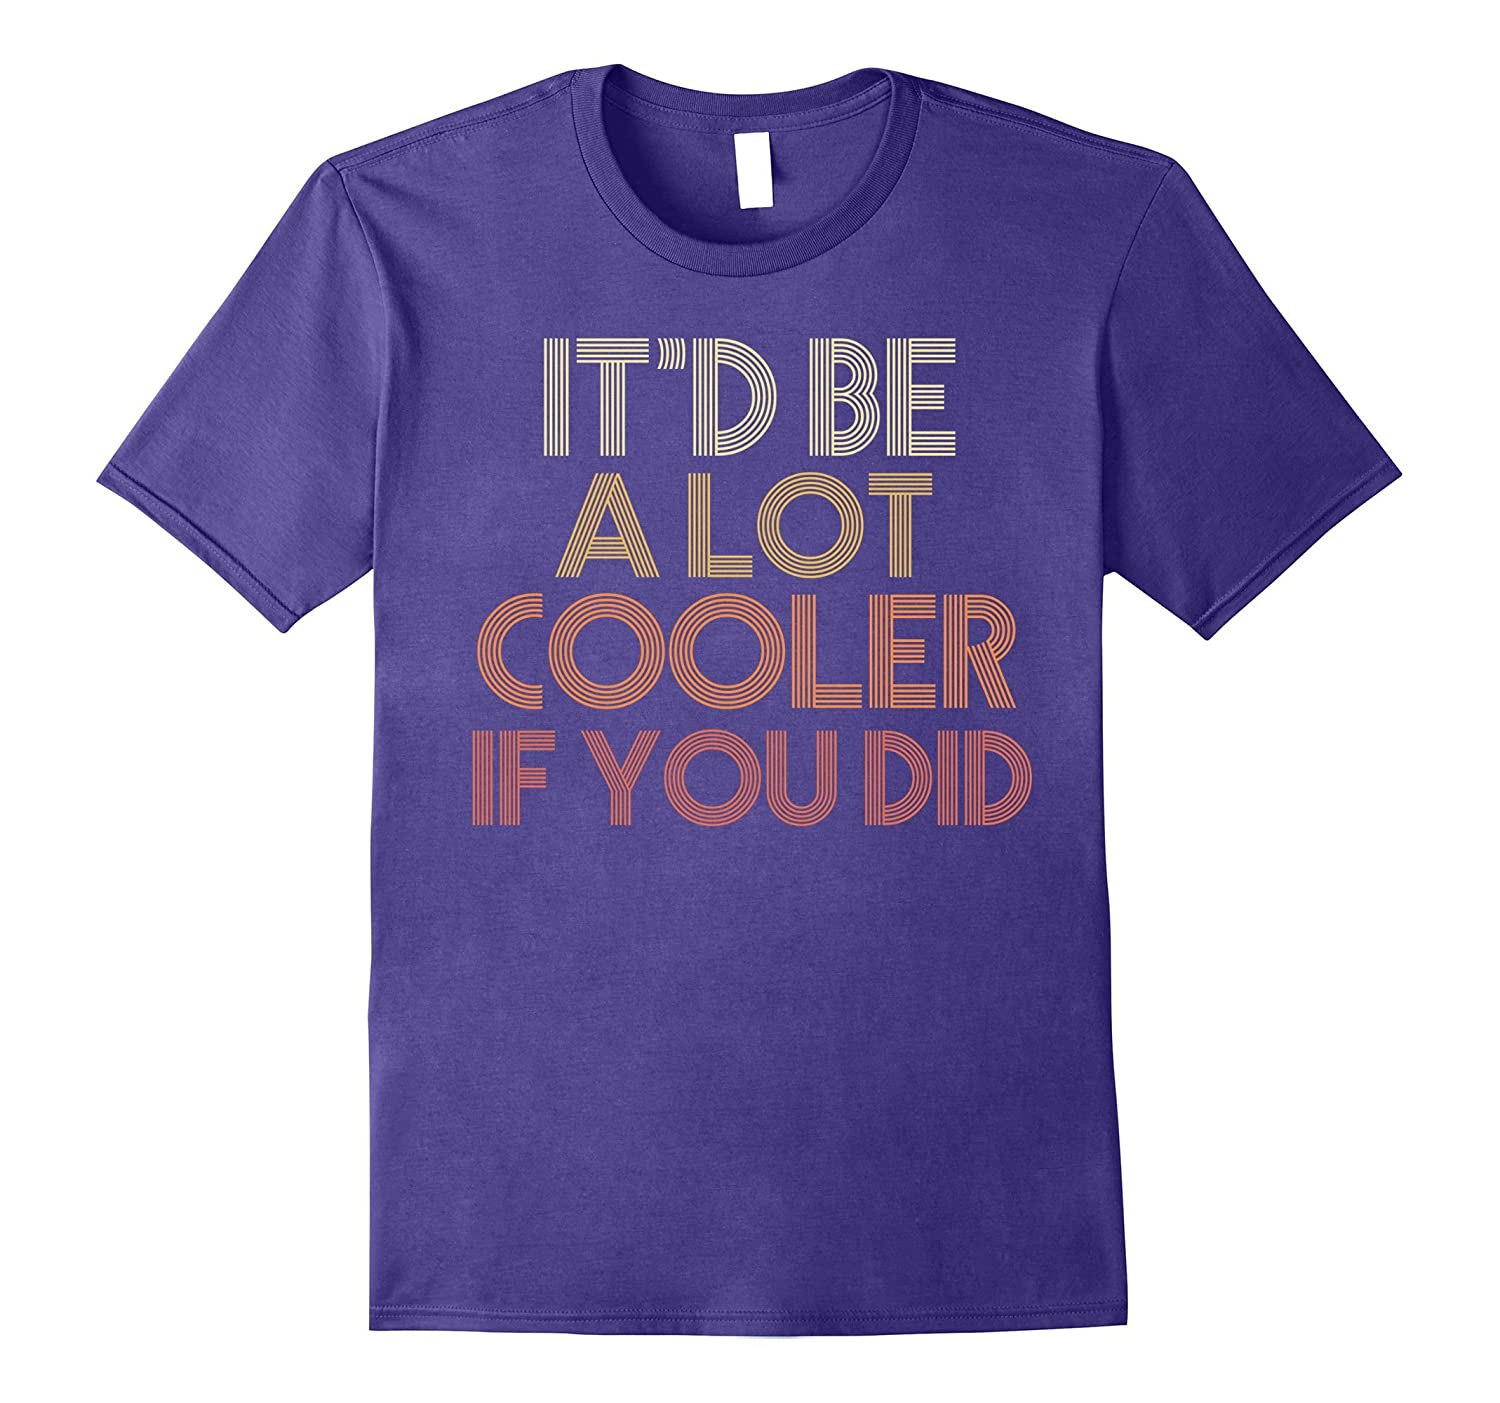 Cooler Shirt Funny Quote 1970s-Tovacu